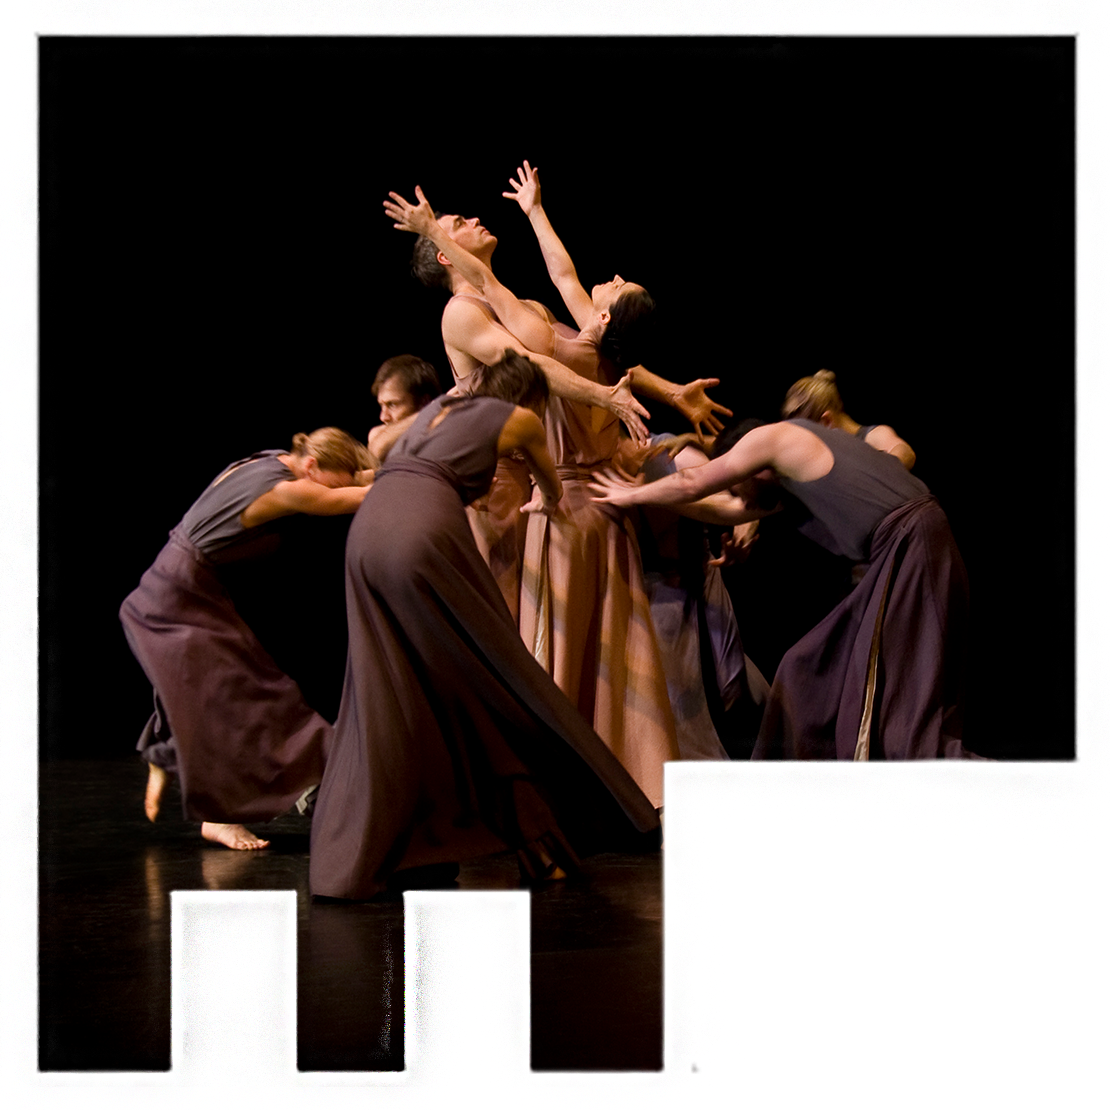 Coleman Lemieux and Compagnie: In Paradisum  in the photo.